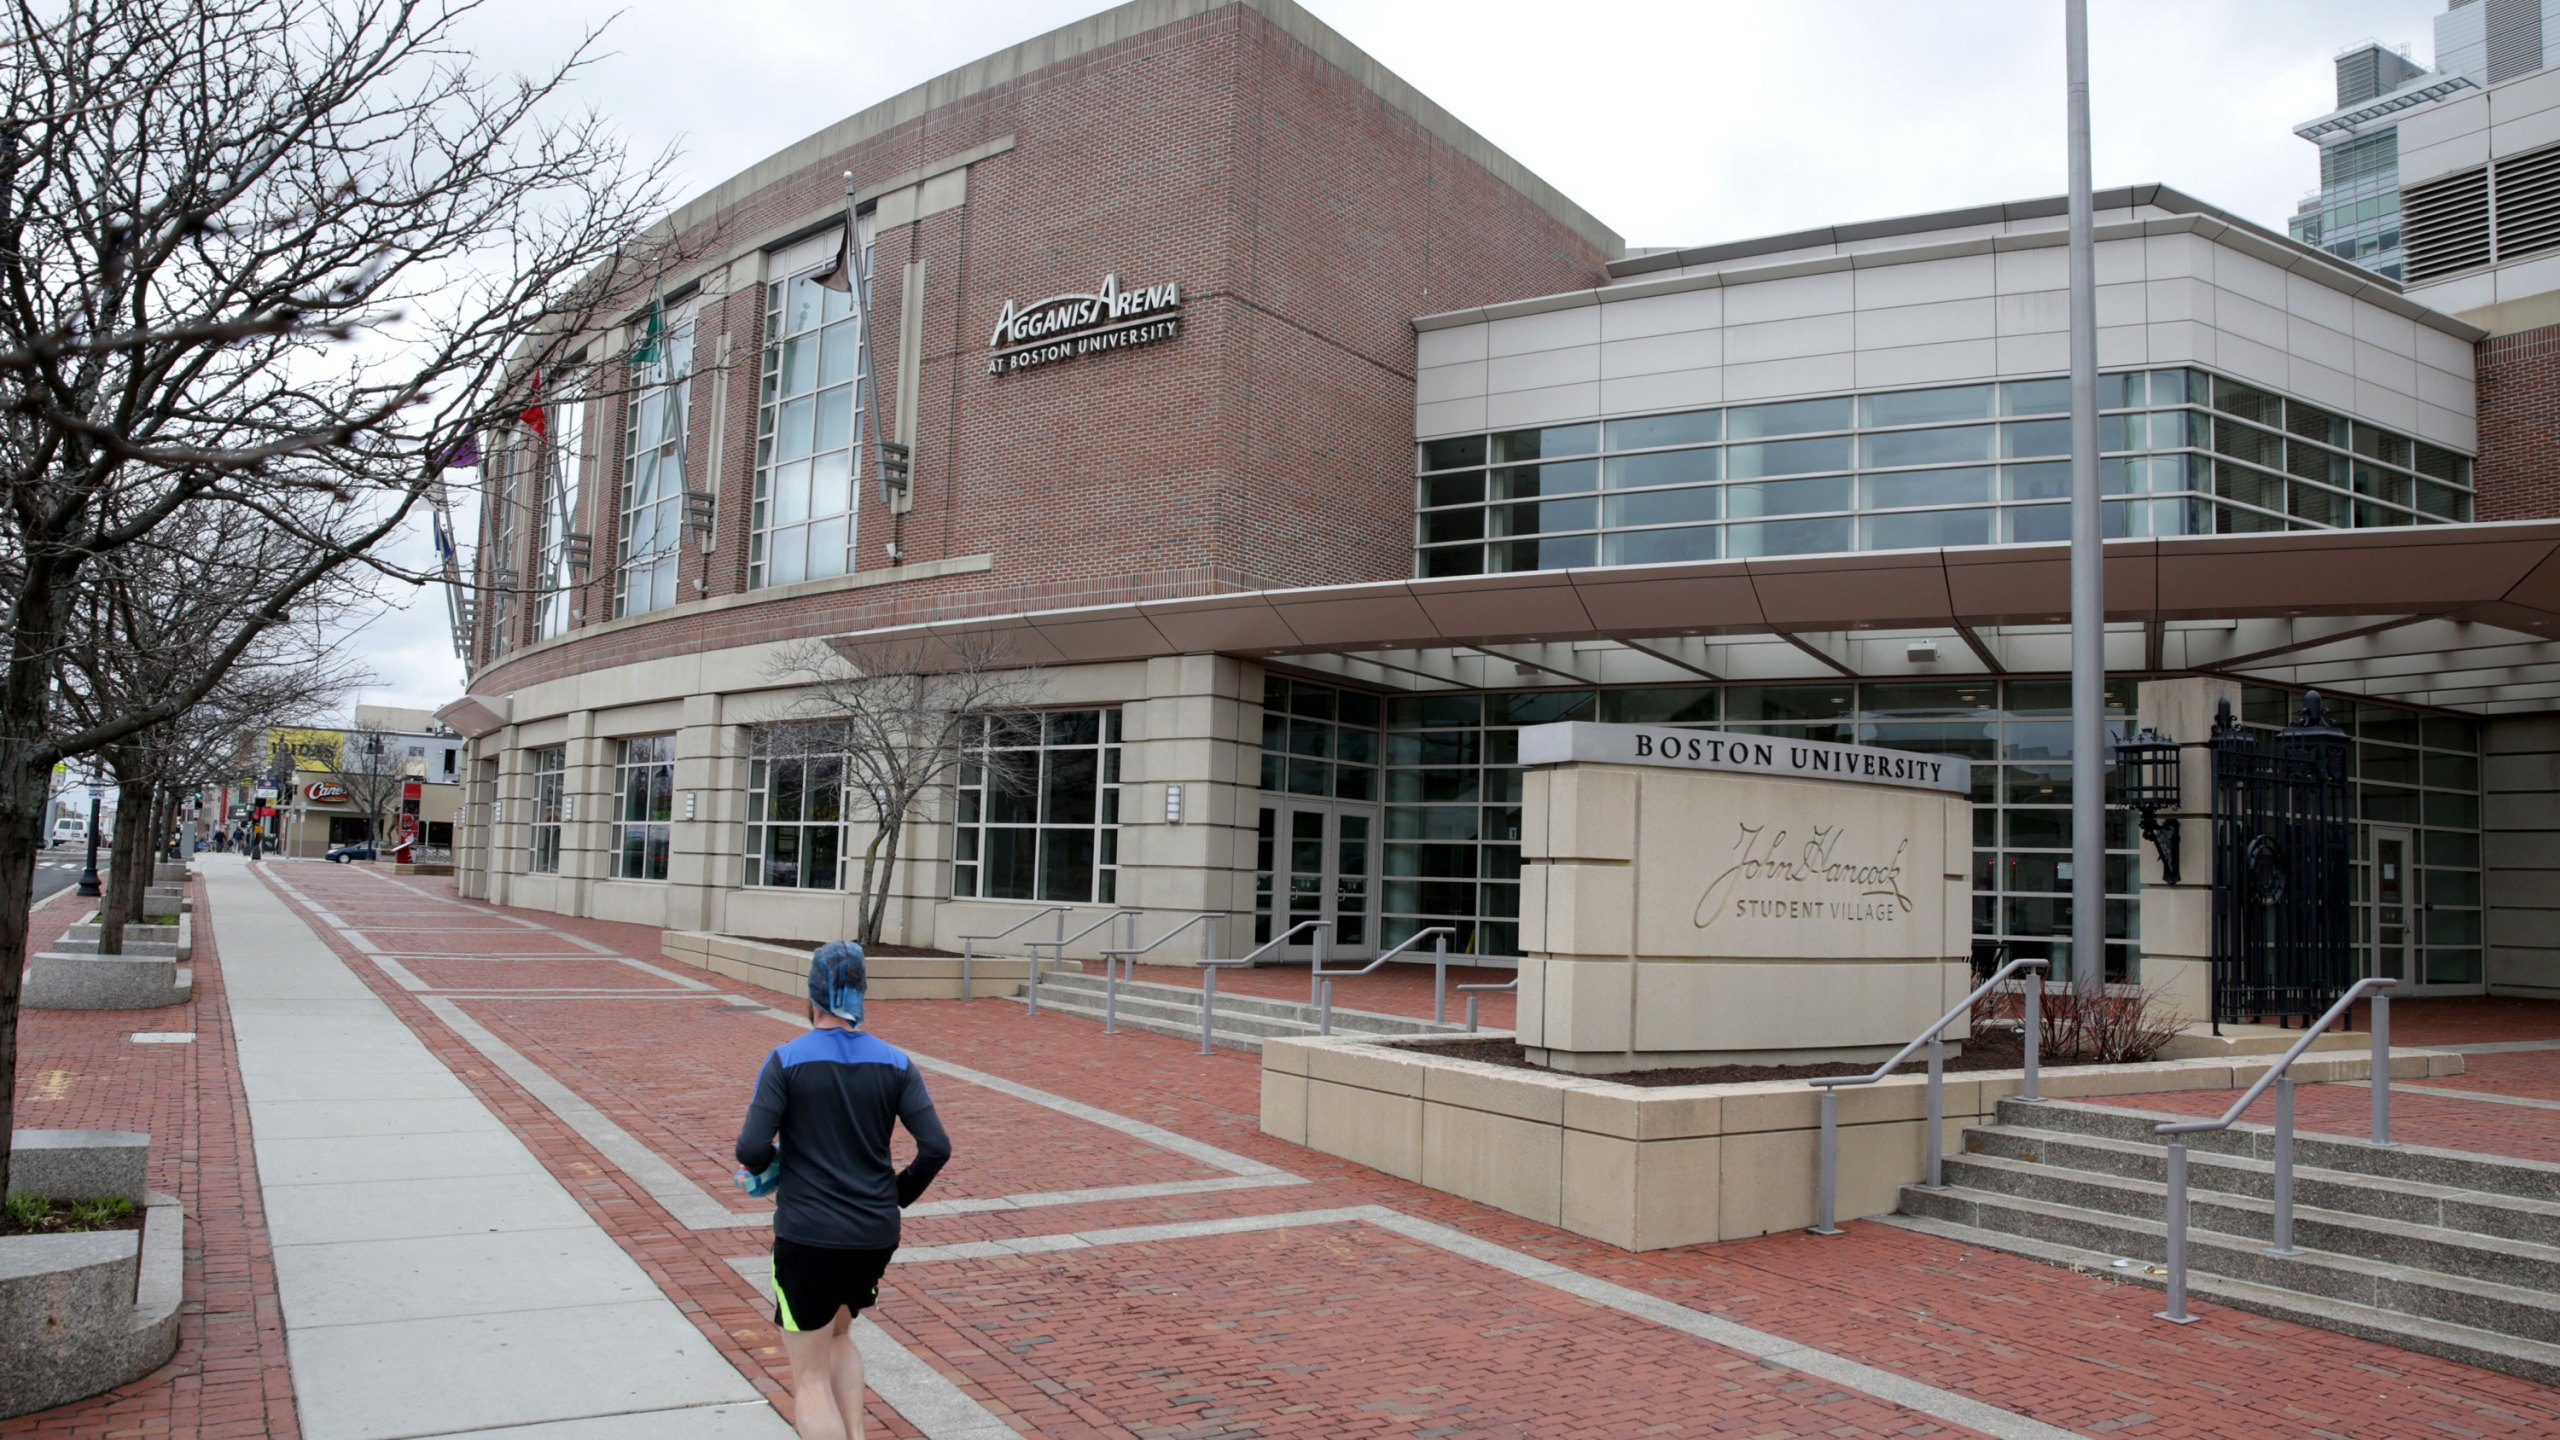 A person runs past Agganis Arena at Boston University along Commonwealth Ave. in Boston on March 25, 2020. Agganis Arena was set to host the Women's Frozen Four hockey tournament, but the event was cancelled. The coronavirus pandemic has postponed, suspended or cancelled many major sporting events and seasons. (Jonathan Wiggs/The Boston Globe via Getty Images)